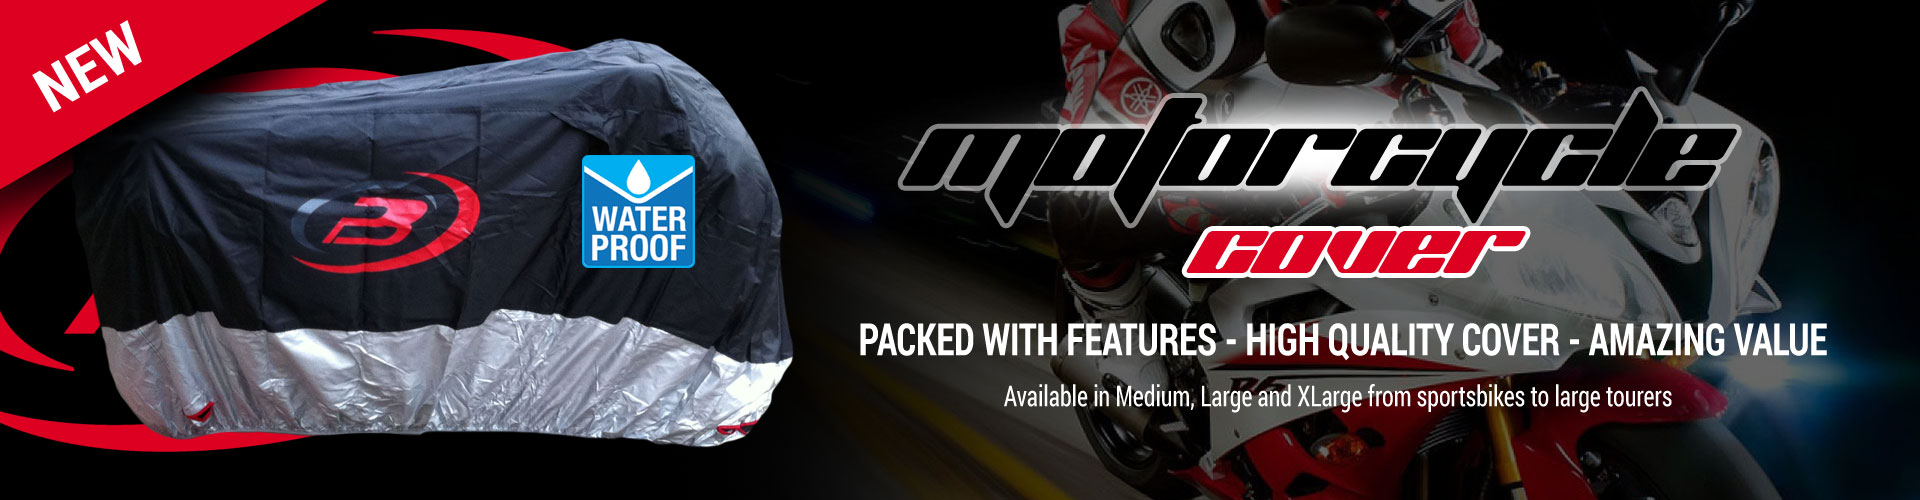 banner-motorcycle-cover